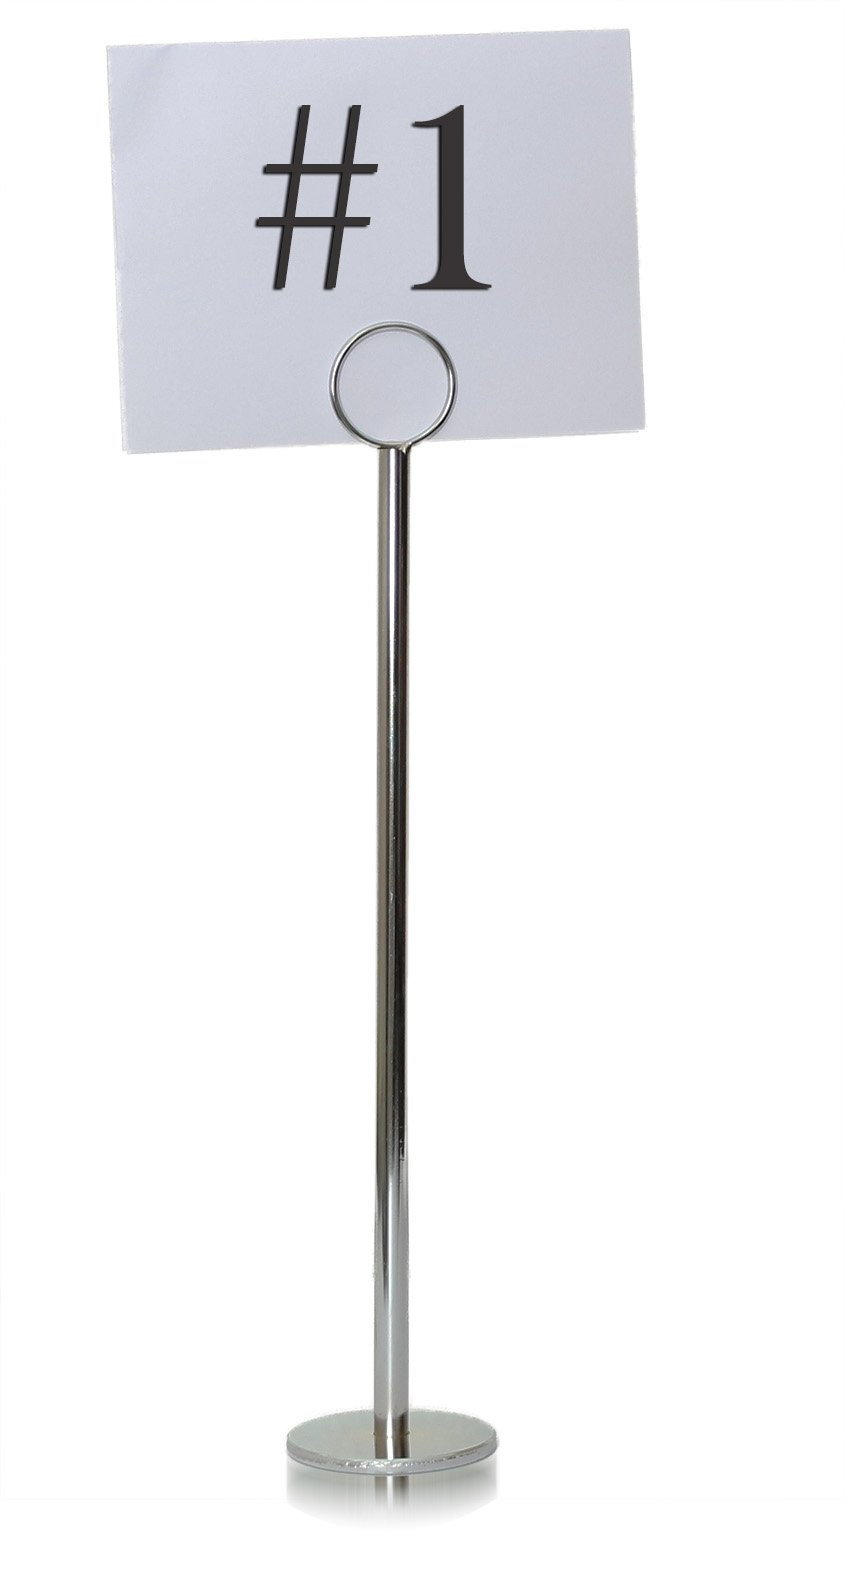 Tiger Chef Table Number Holders Table Number Stands Place Card Holders Silver Menu Holder 15 inch (20, 15 Inch)